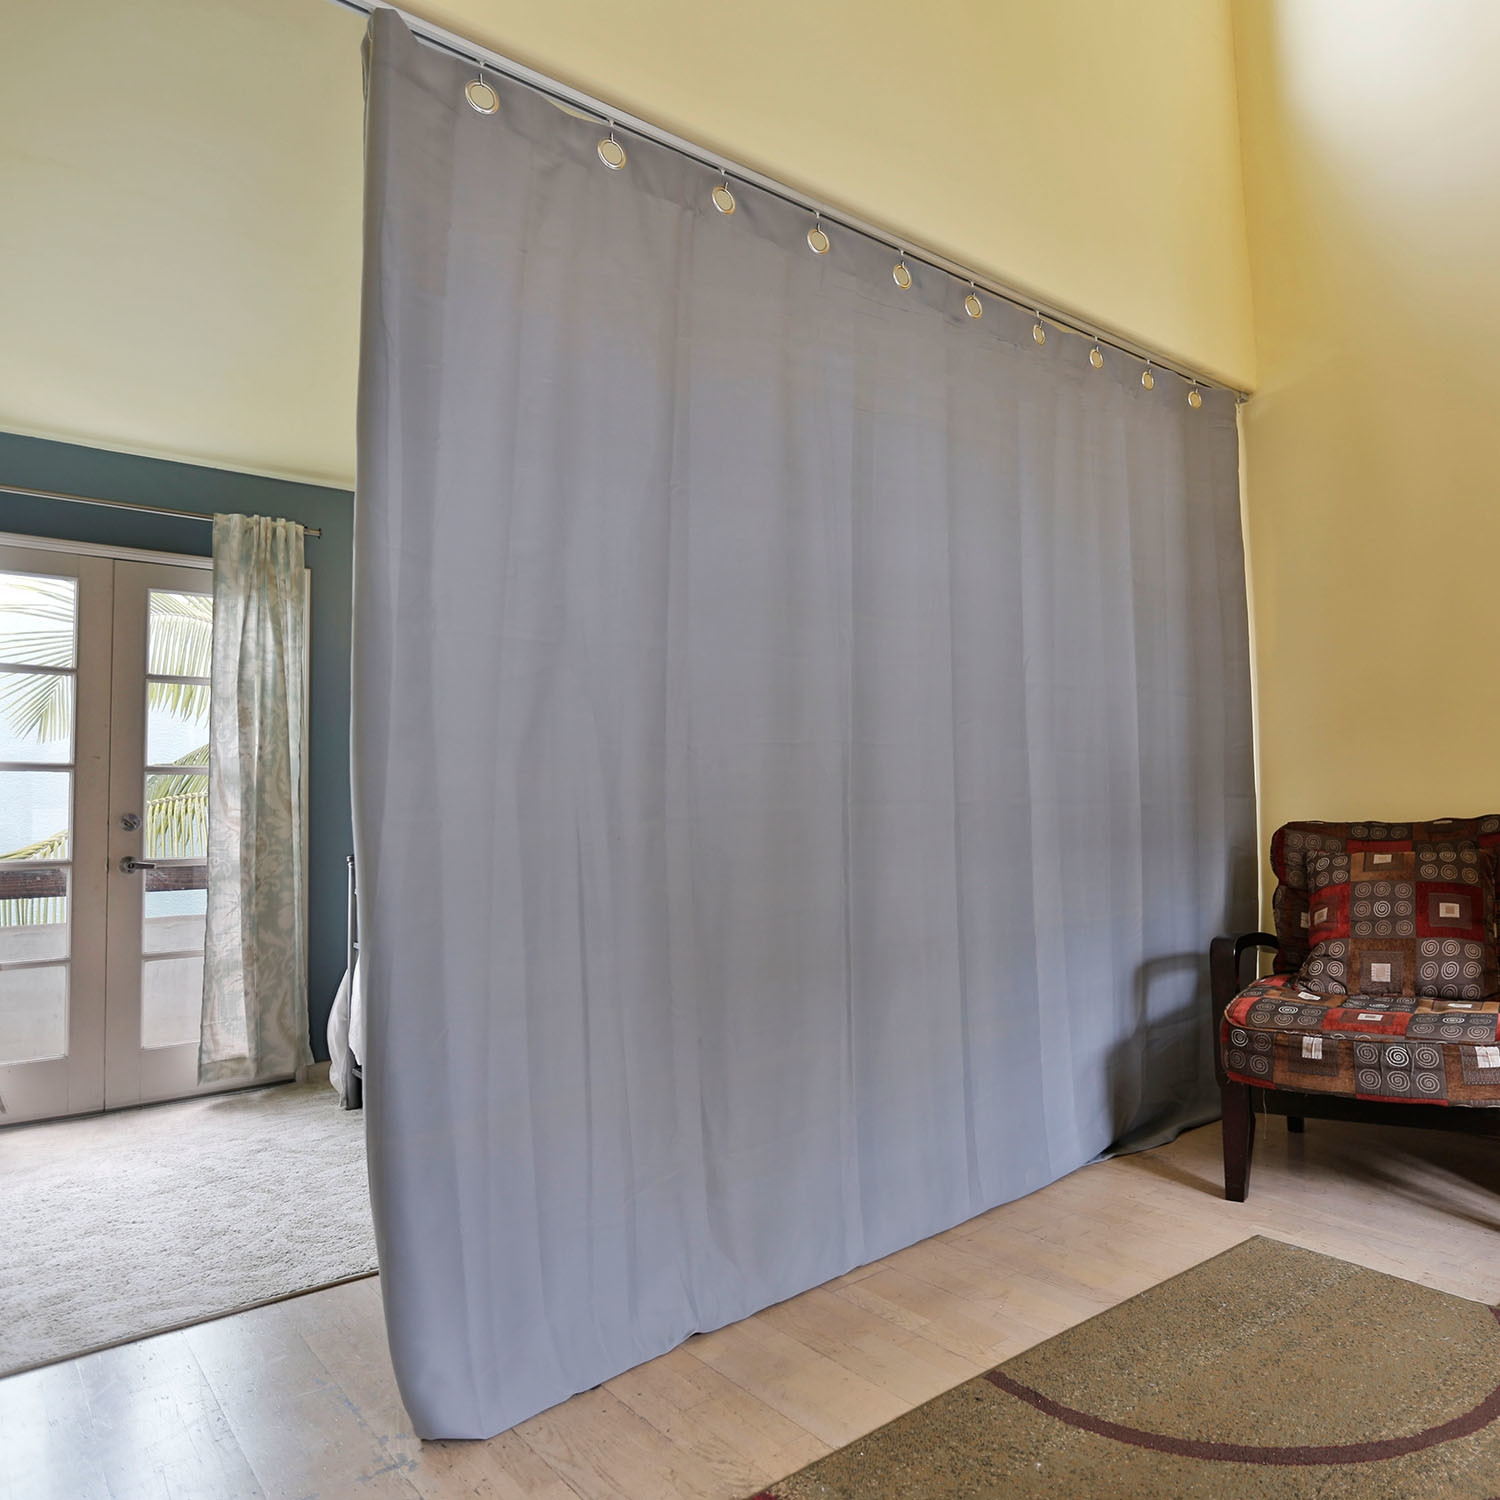 Room curtain dividers curtain ideas - Room divider curtain ideas ...